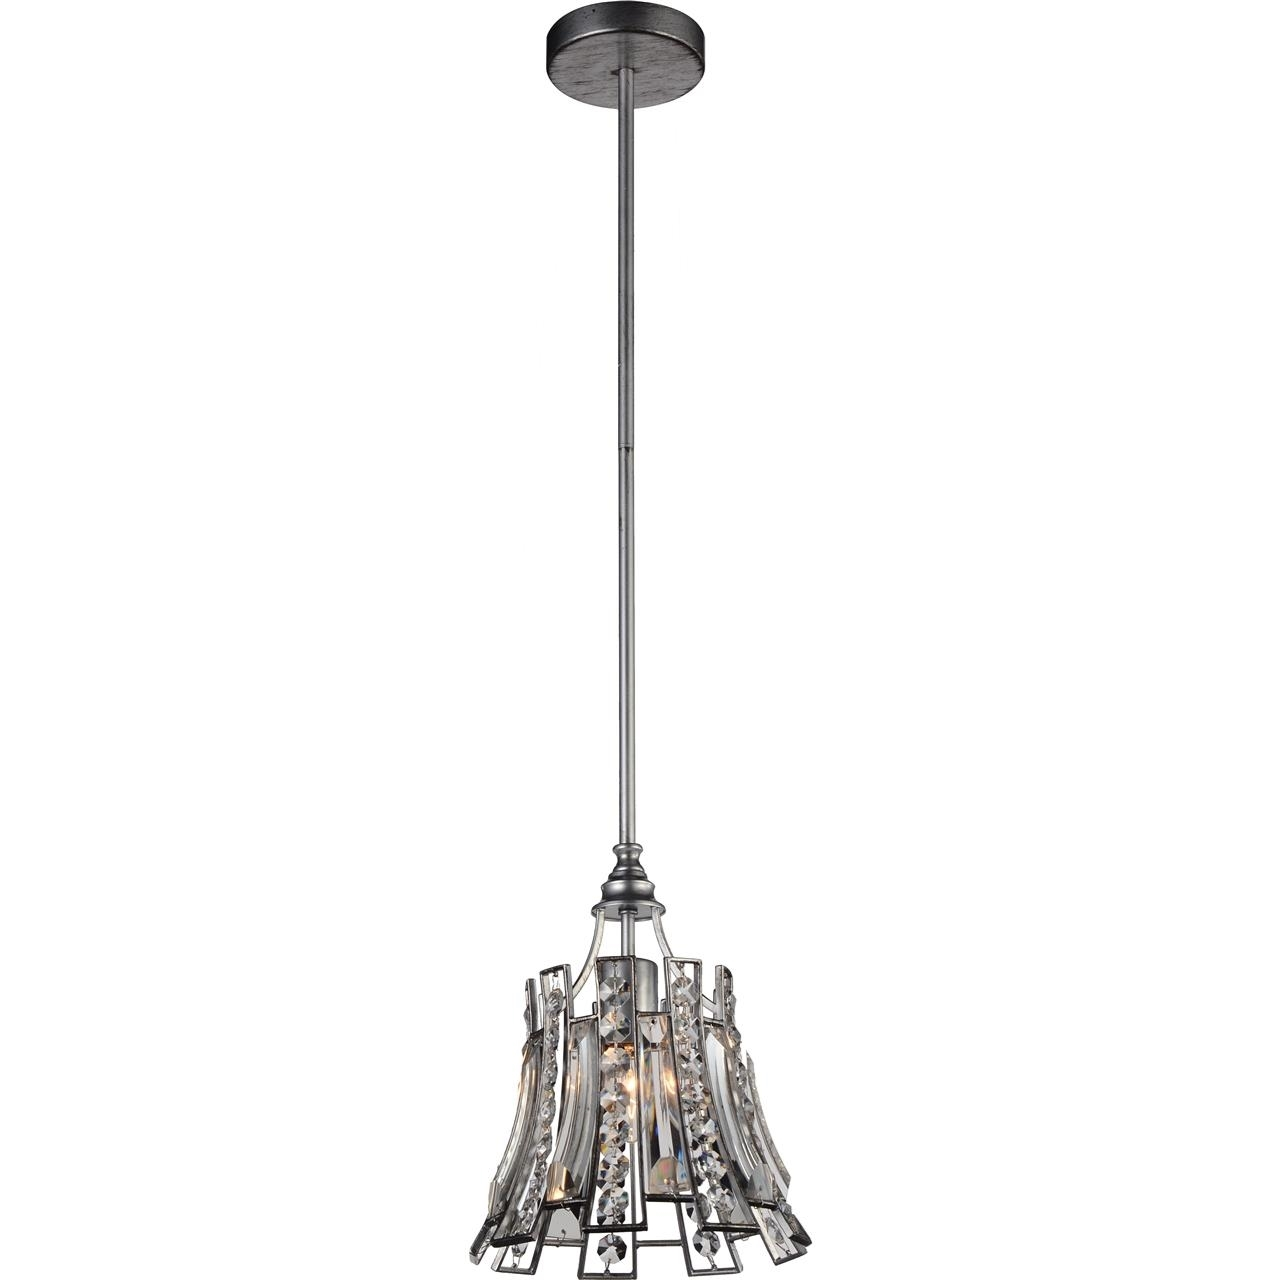 Brizzo lighting stores 11 nile modern crystal round mini pendant picture of 11 nile modern crystal round mini pendant antique forged silver 1 light aloadofball Gallery